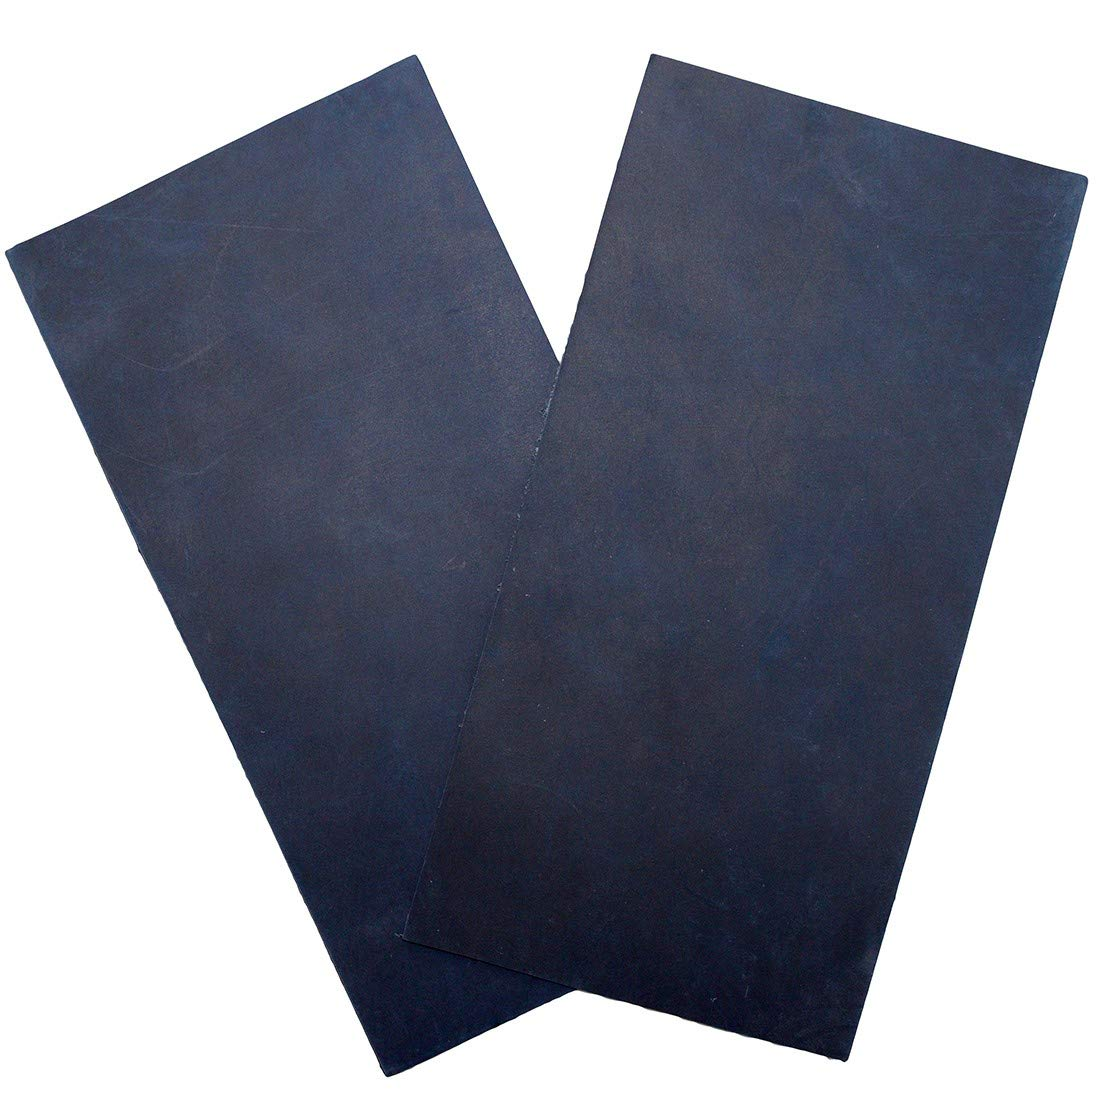 Thick Leather Rectangles 3-3.5mm Heavy Weight 2 Piece Set for Crafts//Tooling//Hobby Workshop Hide /& Drink 6 x 12 in. :: Slate Blue